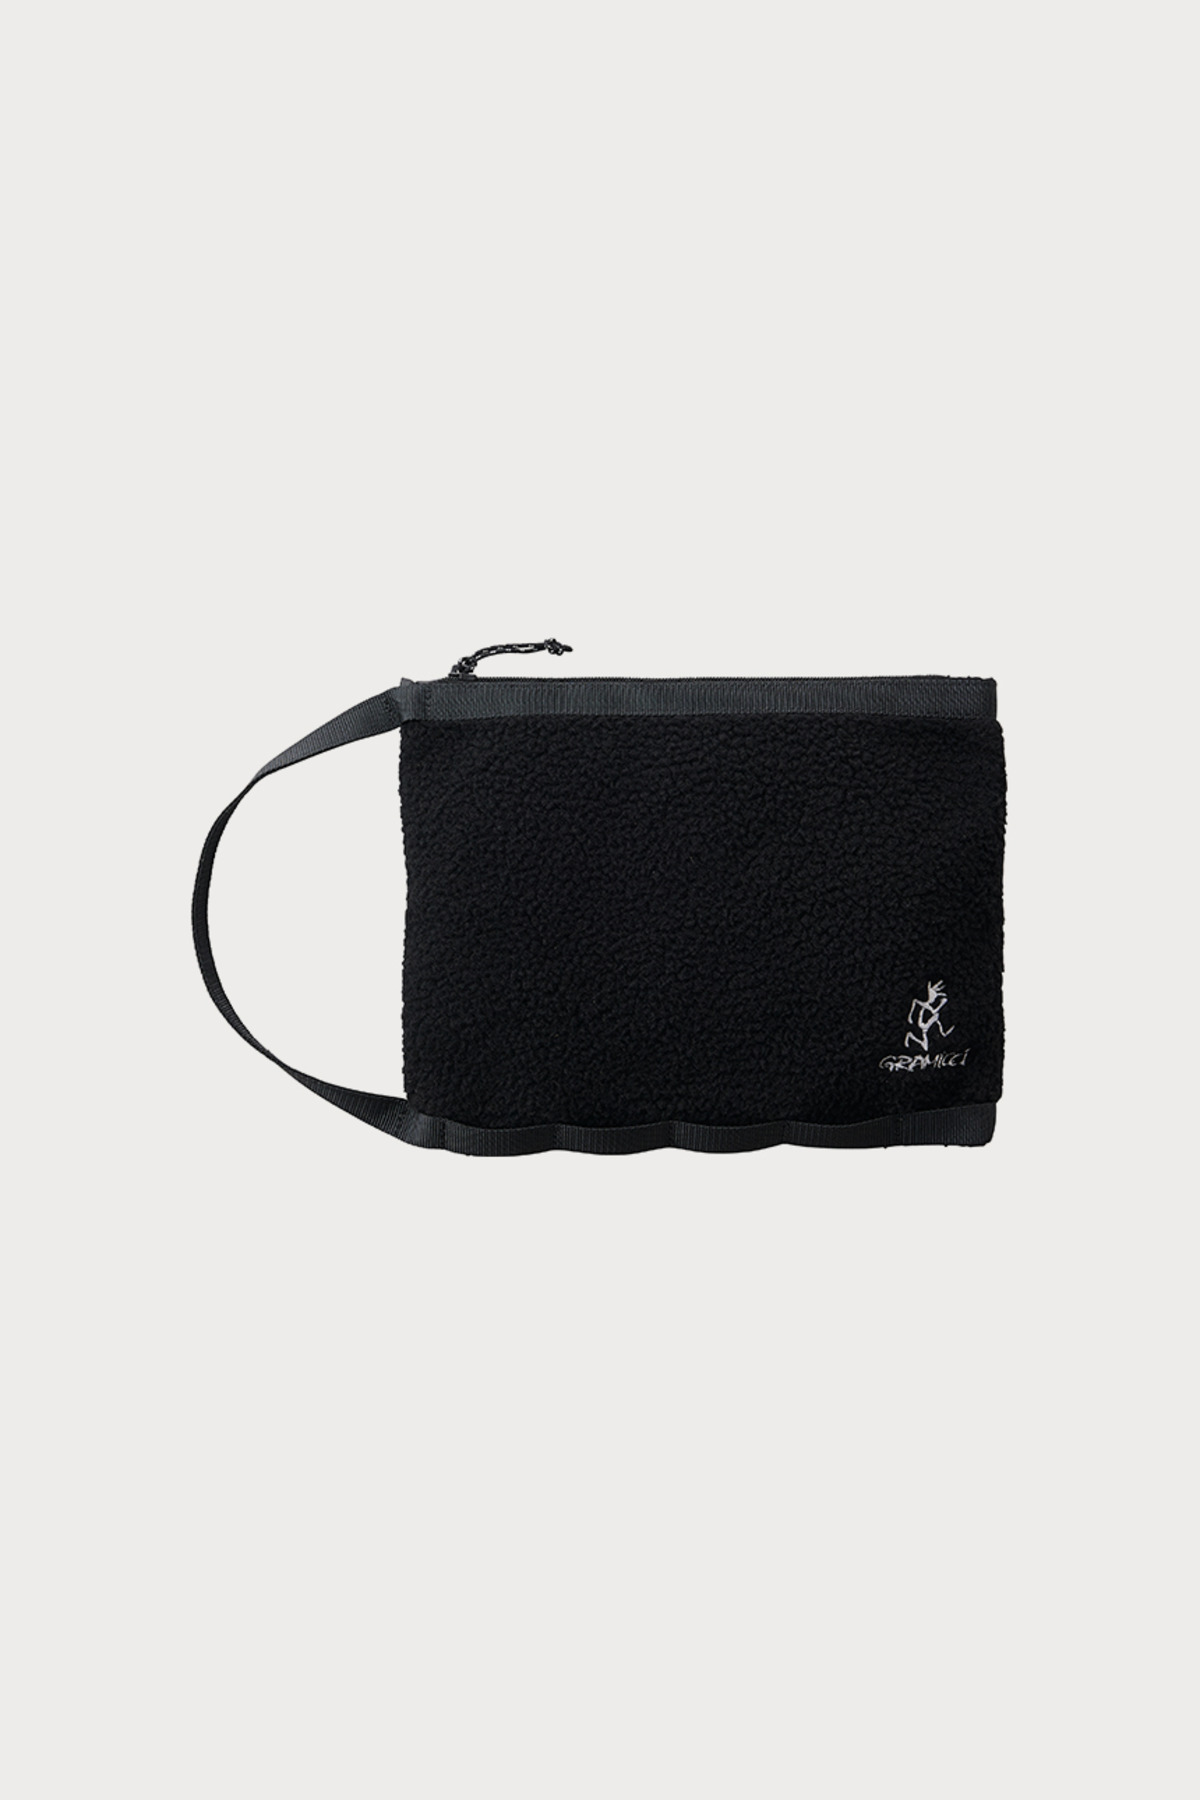 BOA FLEECE HANDLE POUCH BLACK